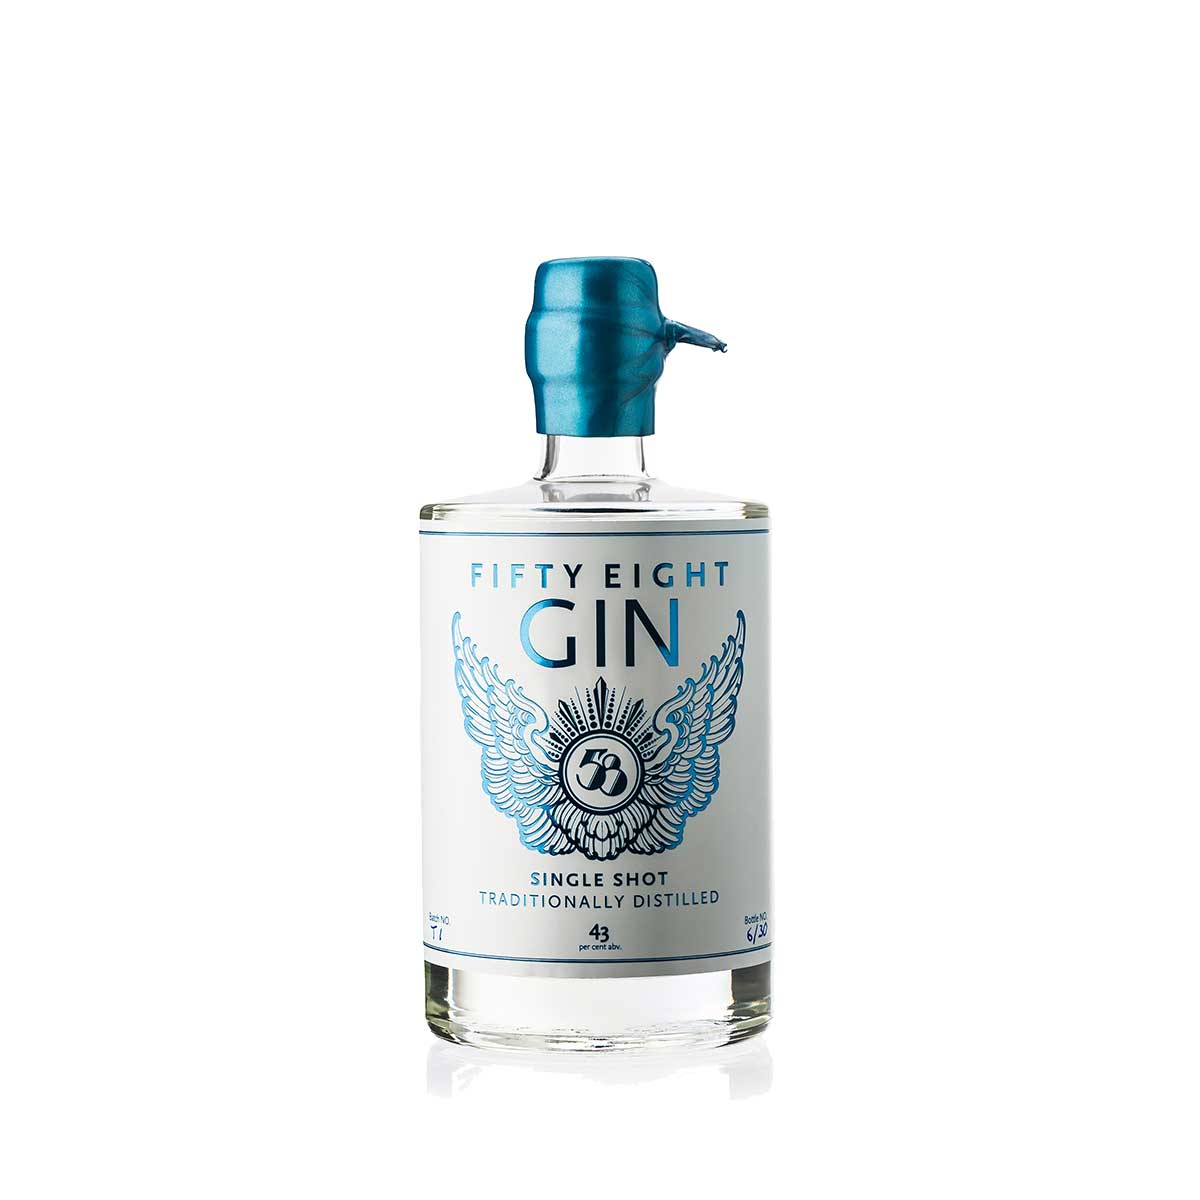 The Fifty Eight Gin bottle